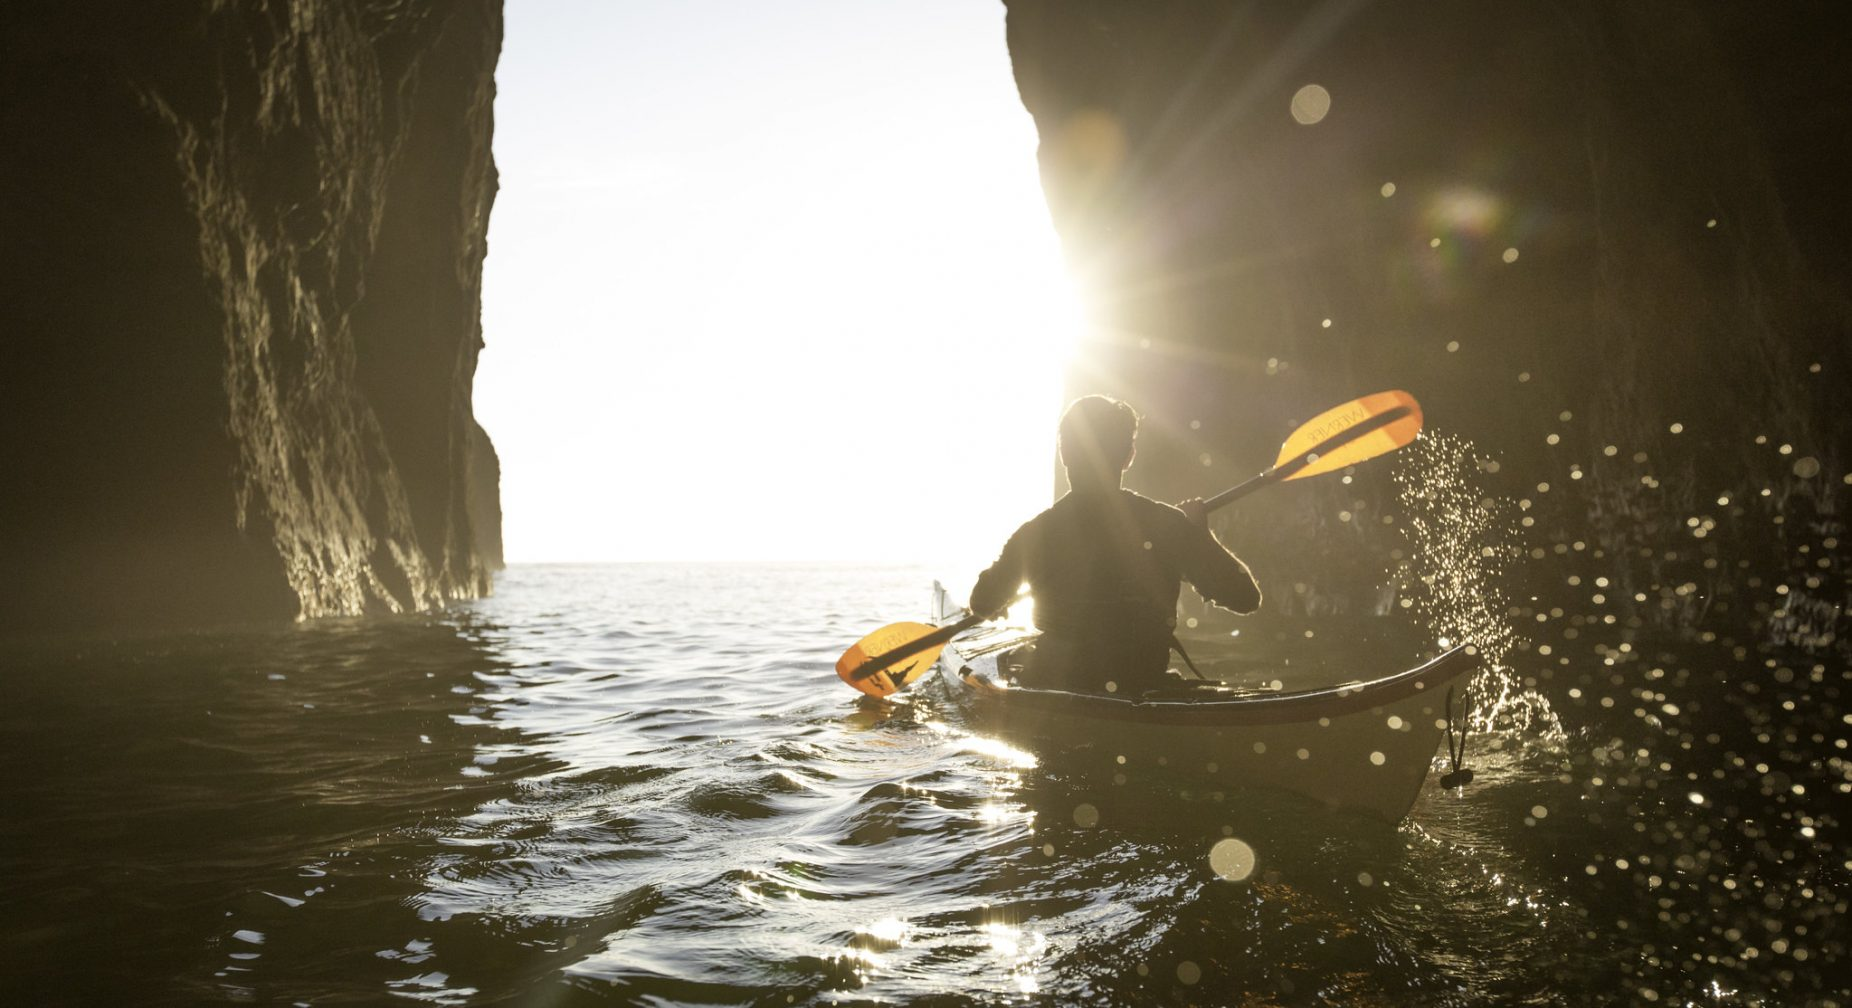 Image: Person kayaking